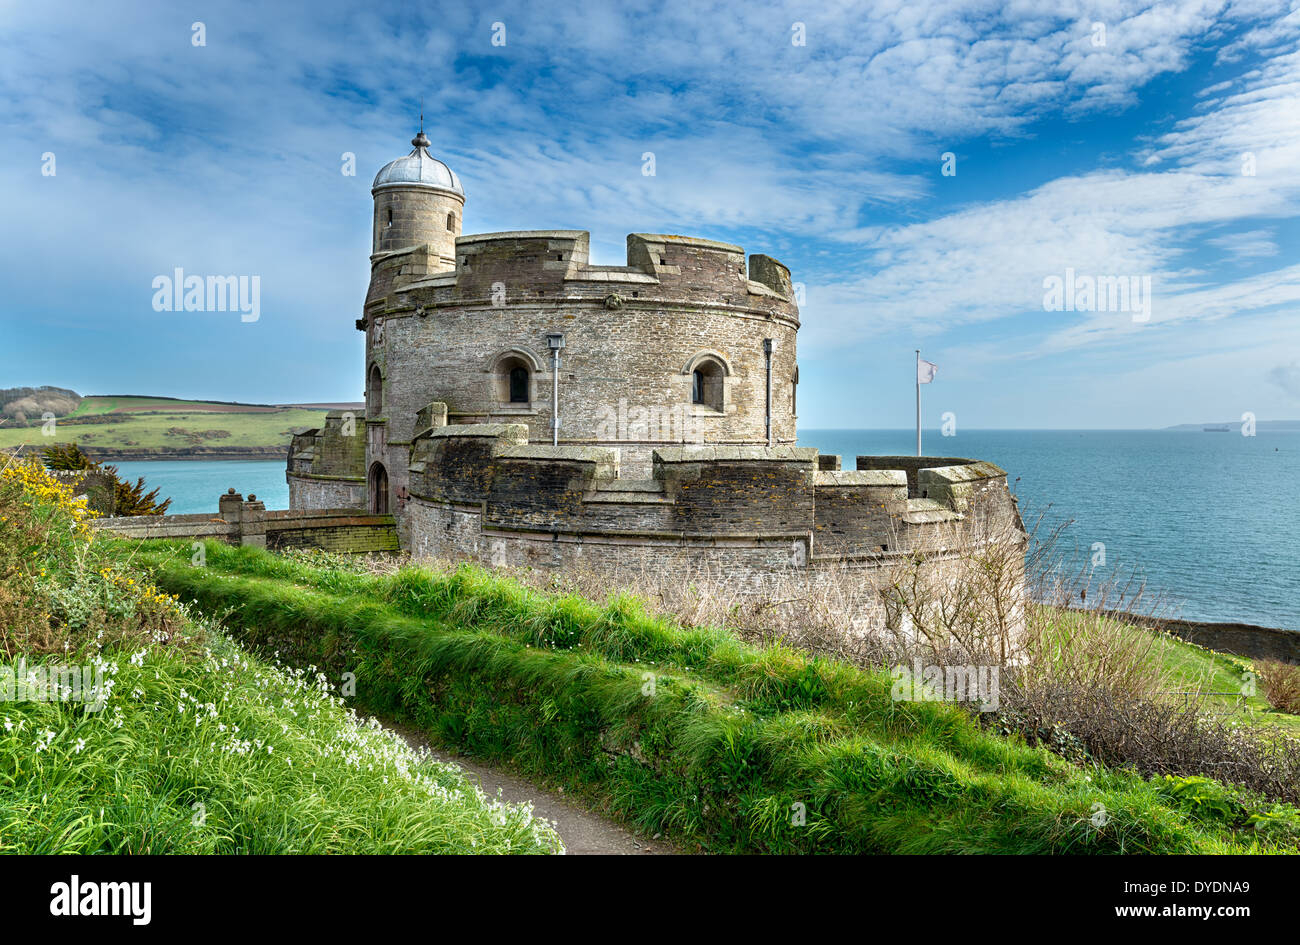 The castle at St Mawes - Stock Image